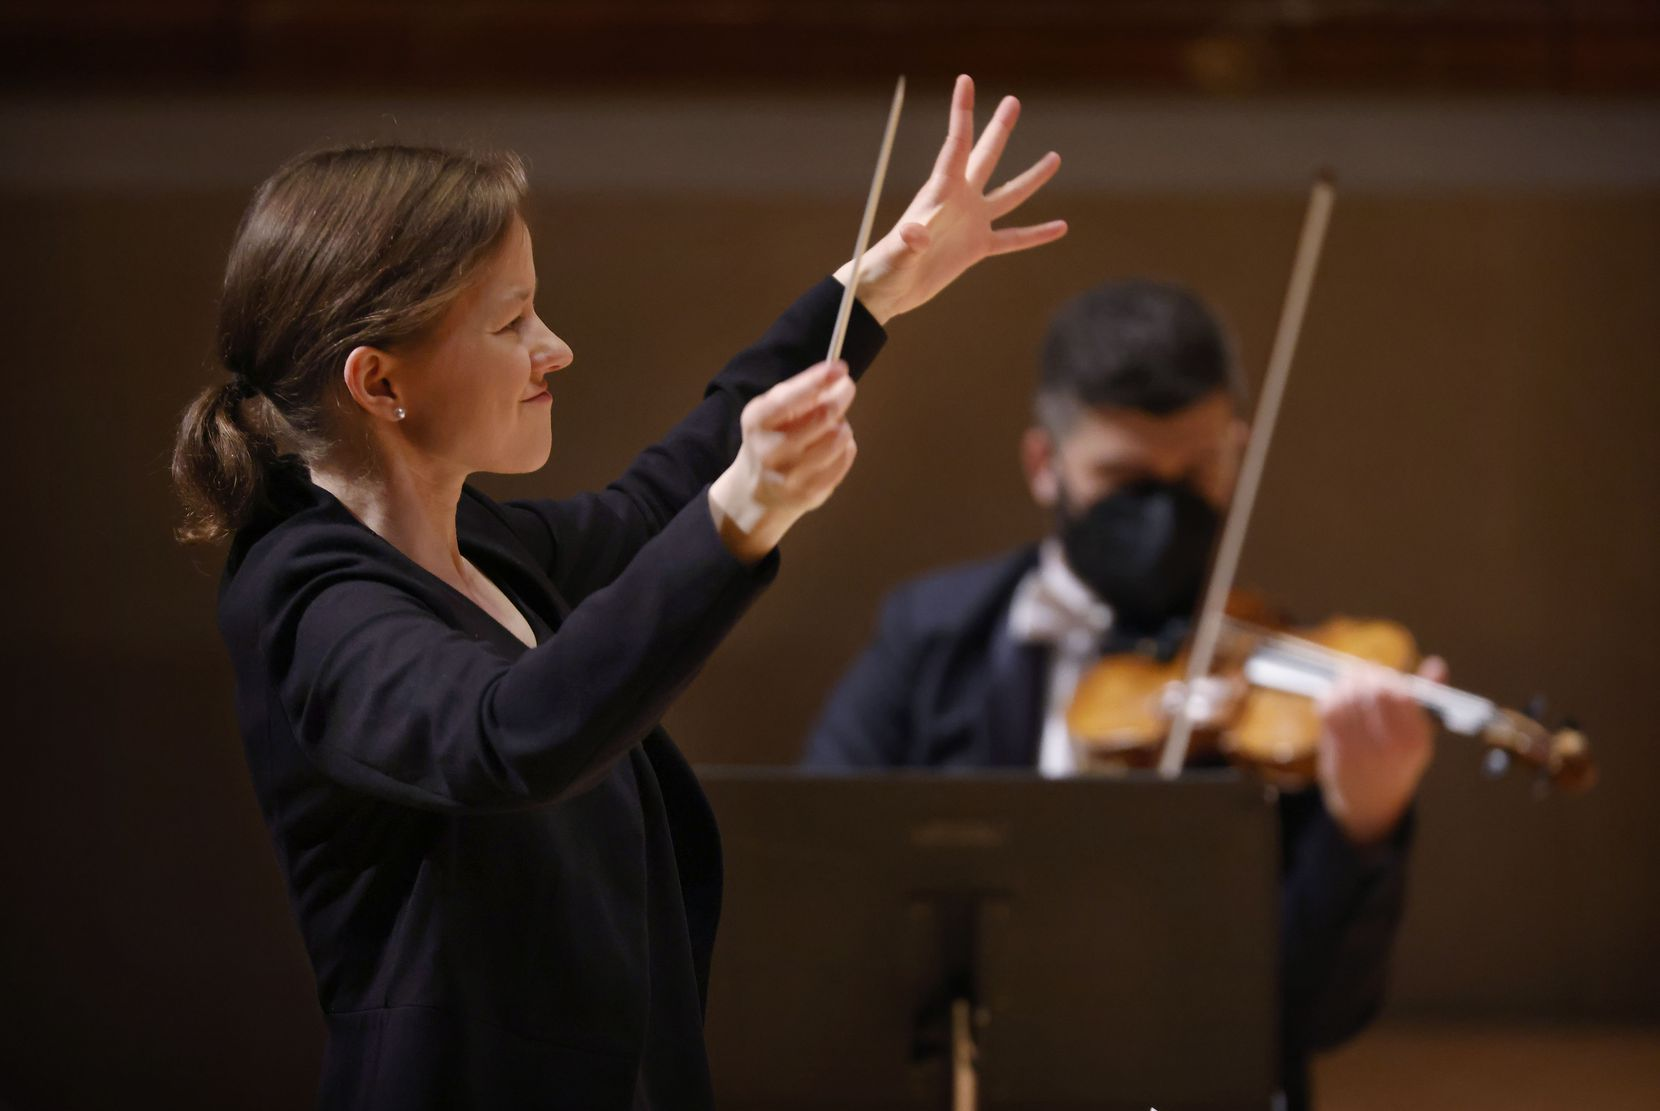 Assistant conductor Katharina Wincor leads the Dallas Symphony Orchestra in Copland's 'Appalachian Spring' Suite.